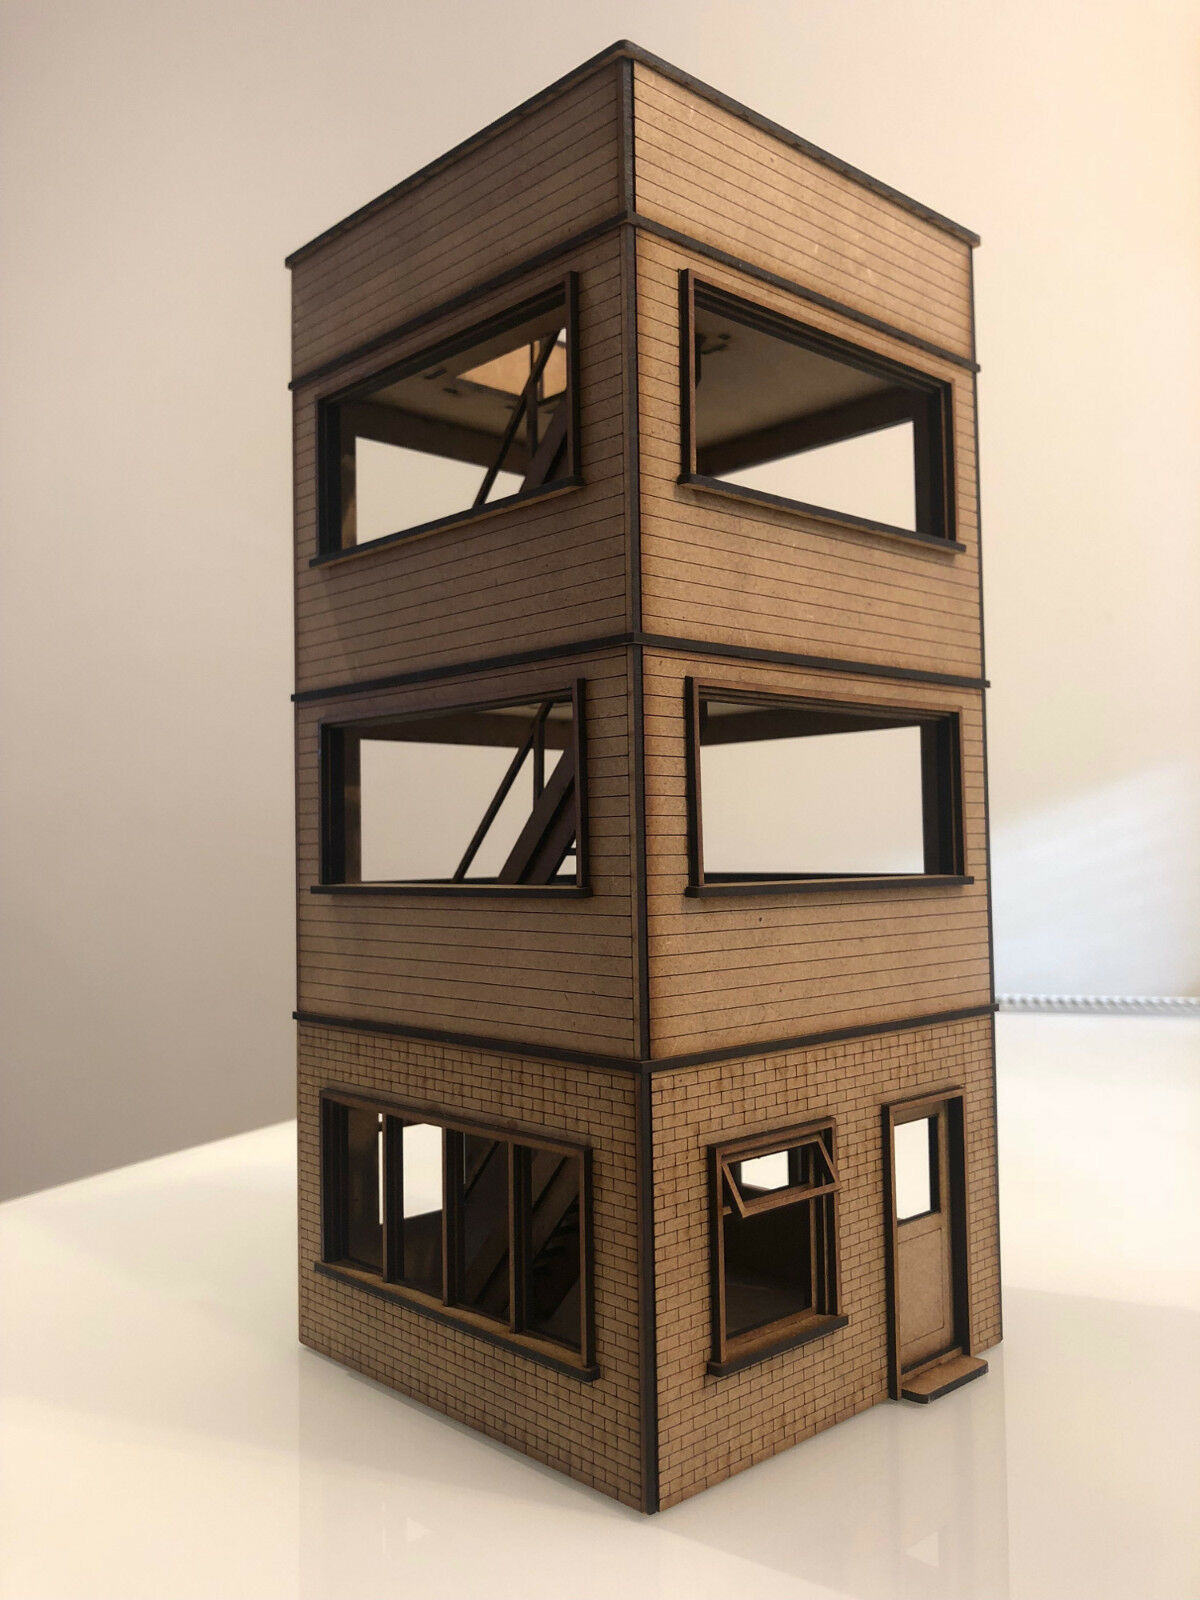 1 32 Media Tower Building for Scalextric, Slot Car Or Magnetic Racing